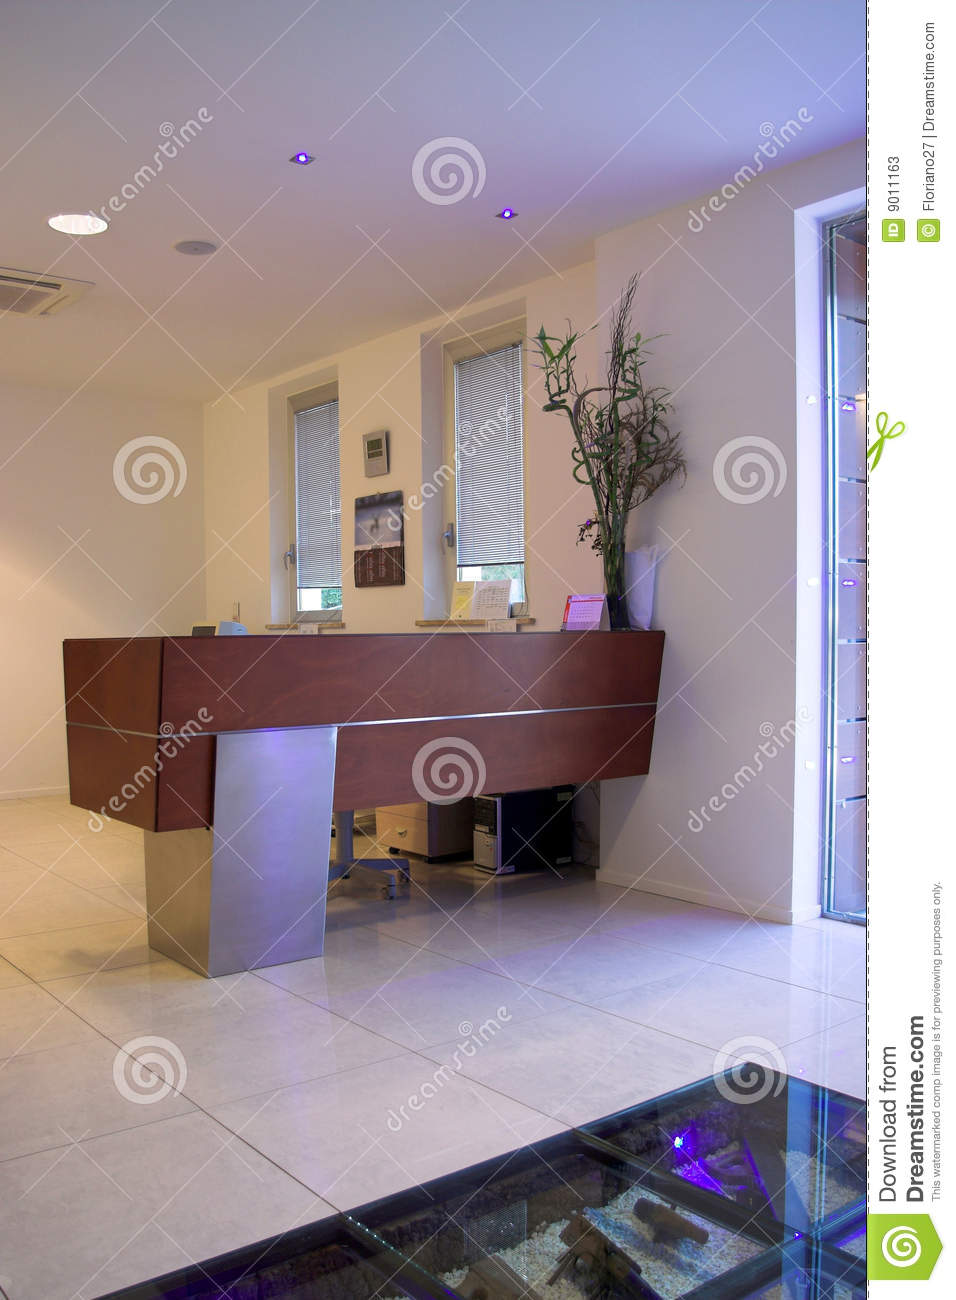 download middot italian design office. Simple Italian Reception Desk Of Modern Office Building To Download Middot Italian Design Office Dreamstimecom